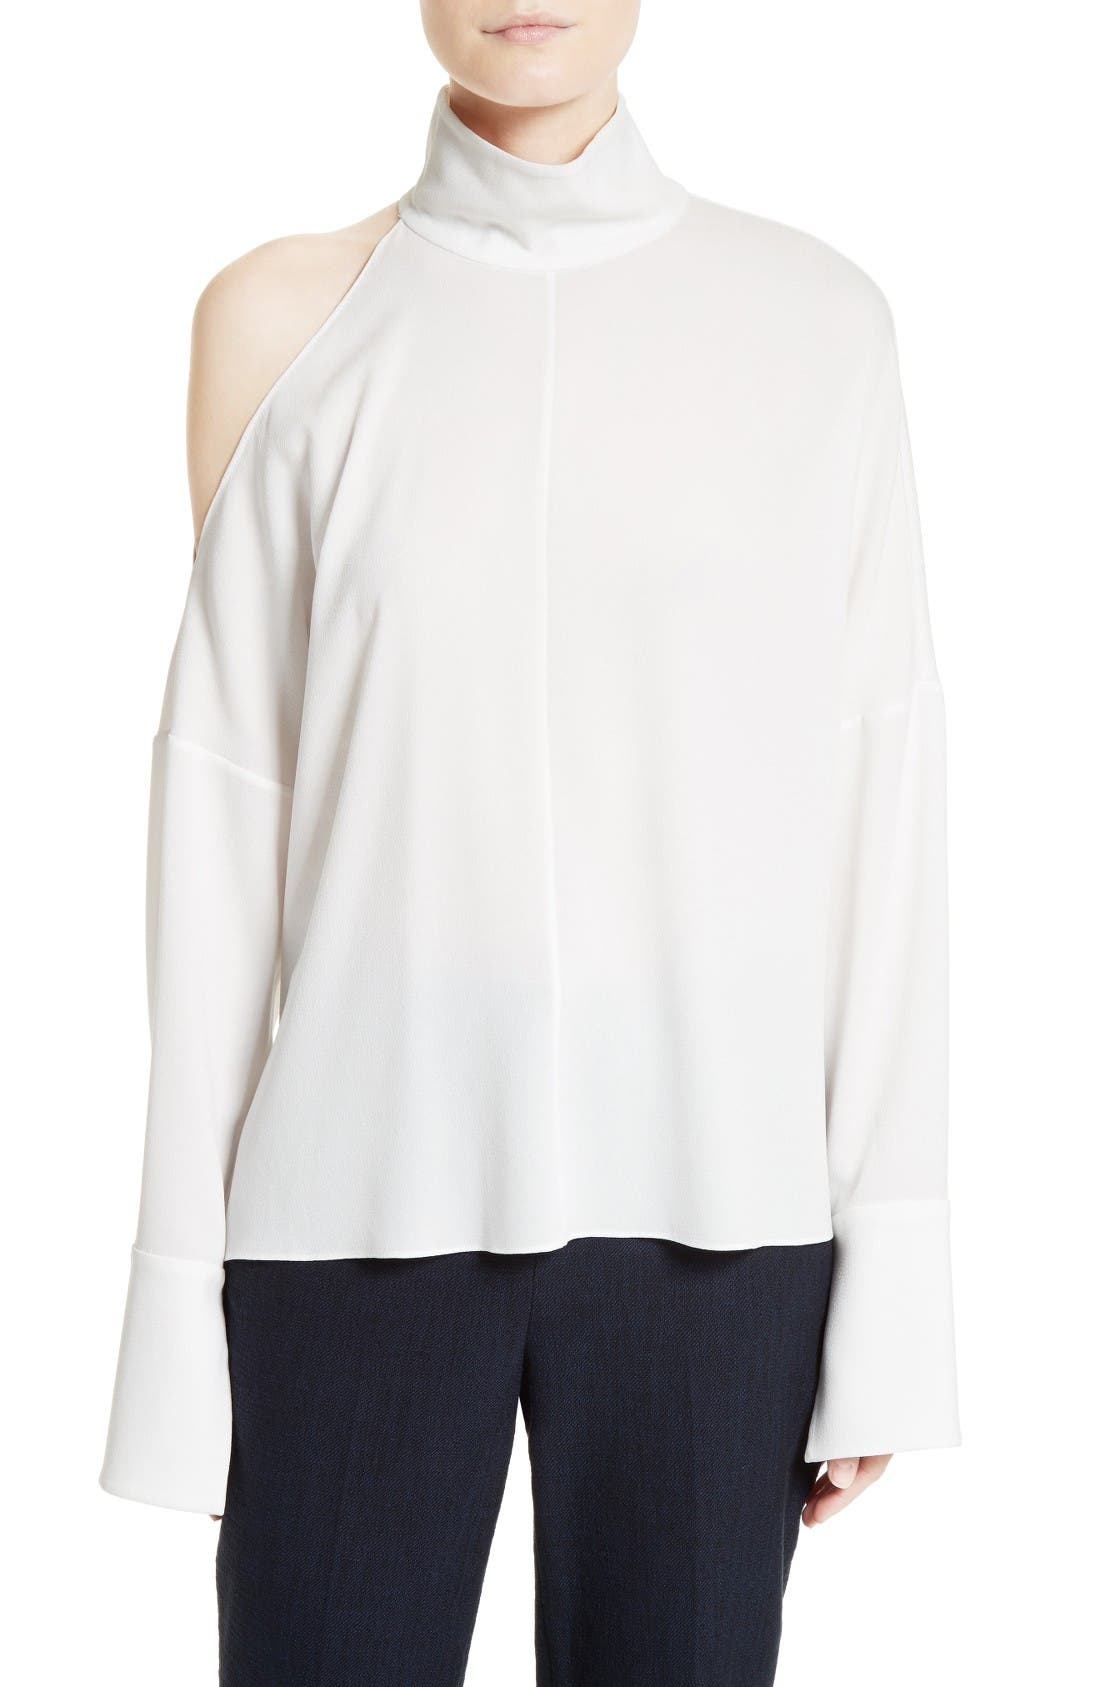 Alternate Image 1 Selected - Tibi Asymmetrical Shoulder Cutout Top